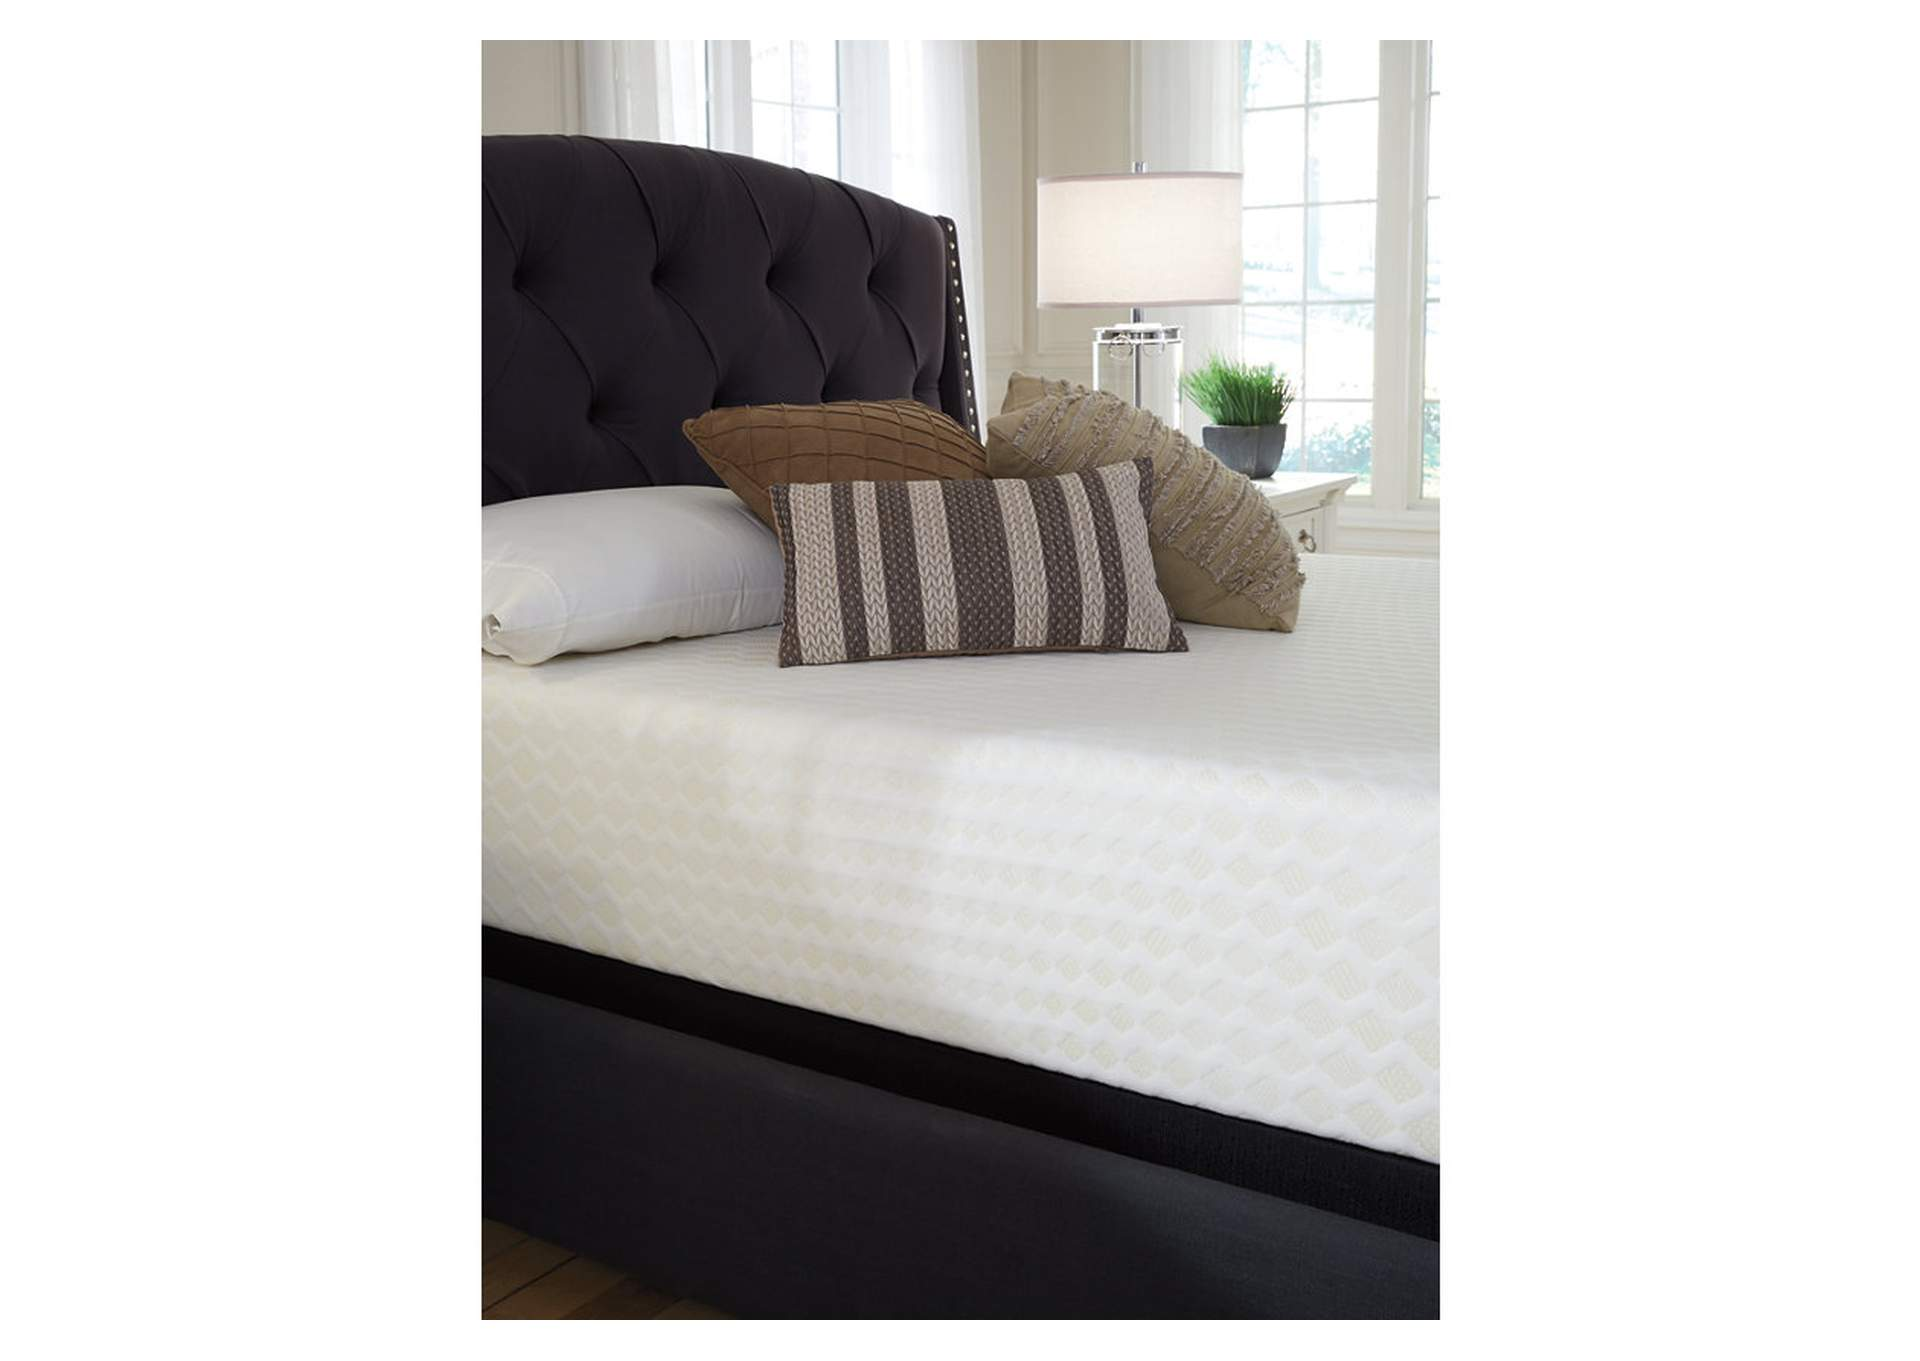 "Chime 12"" Memory Foam Twin Mattress,Sierra Sleep by Ashley"